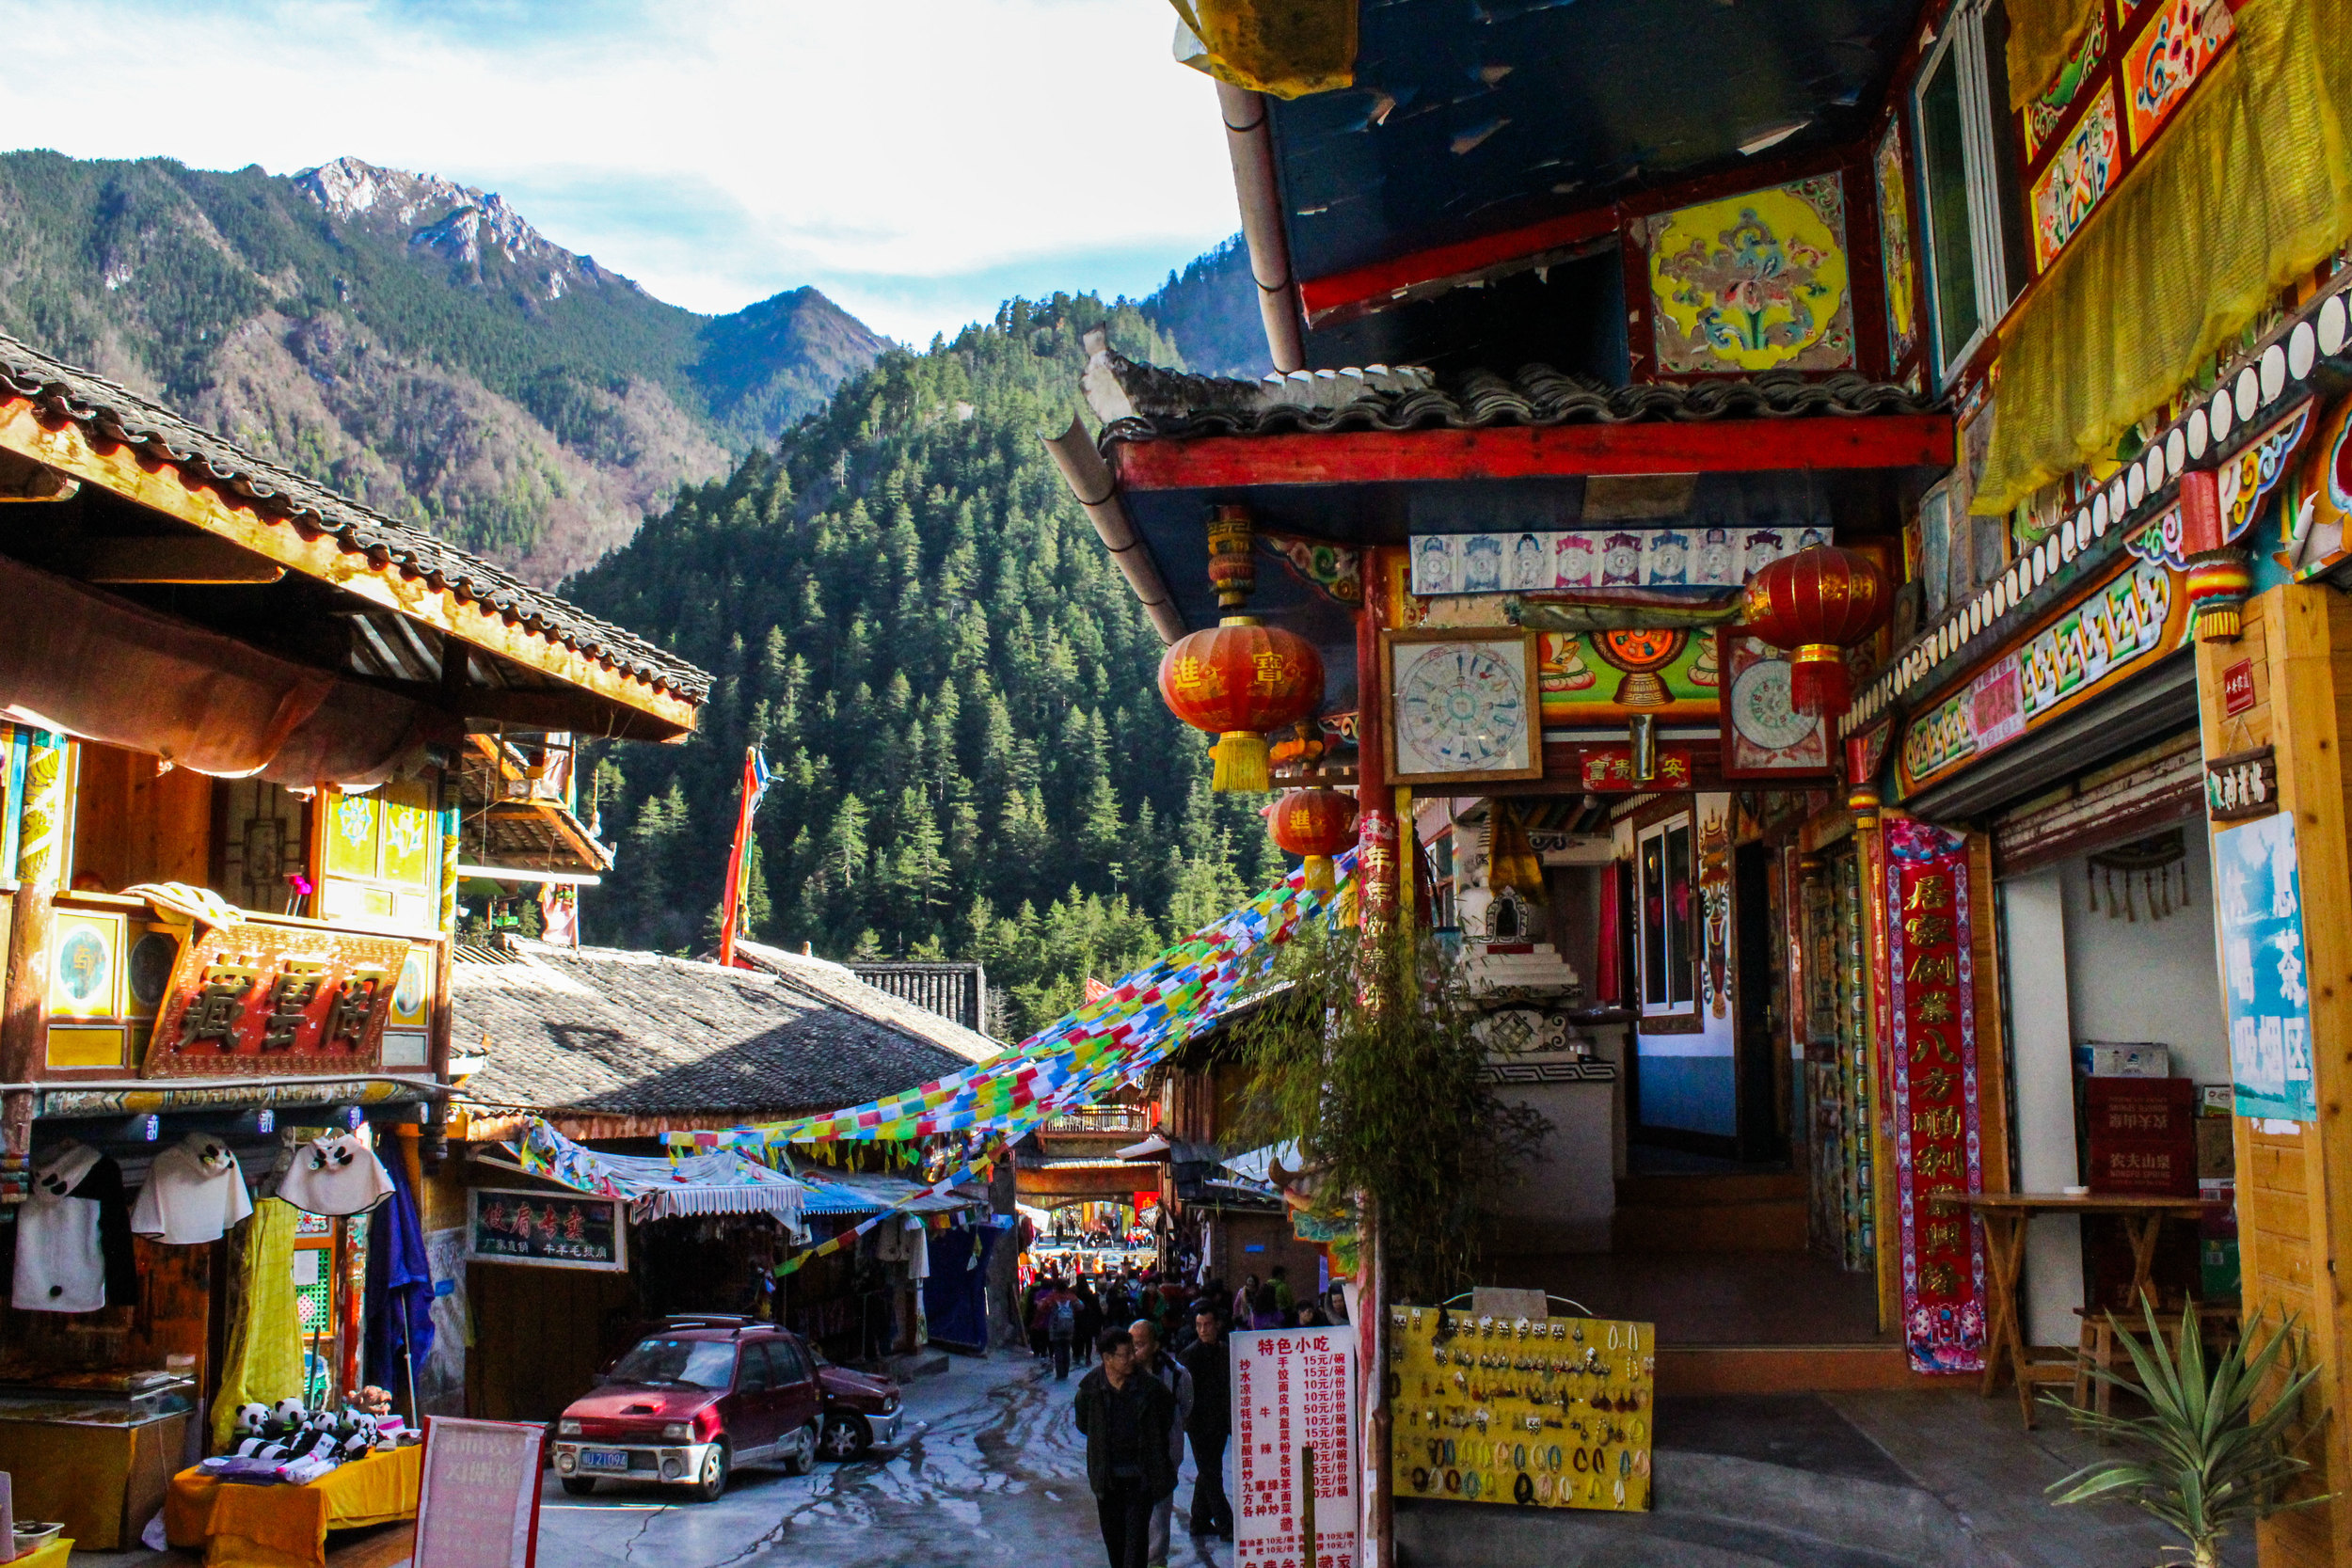 Its in the Sichuan province and is like if Tibet adopted Yellowstone